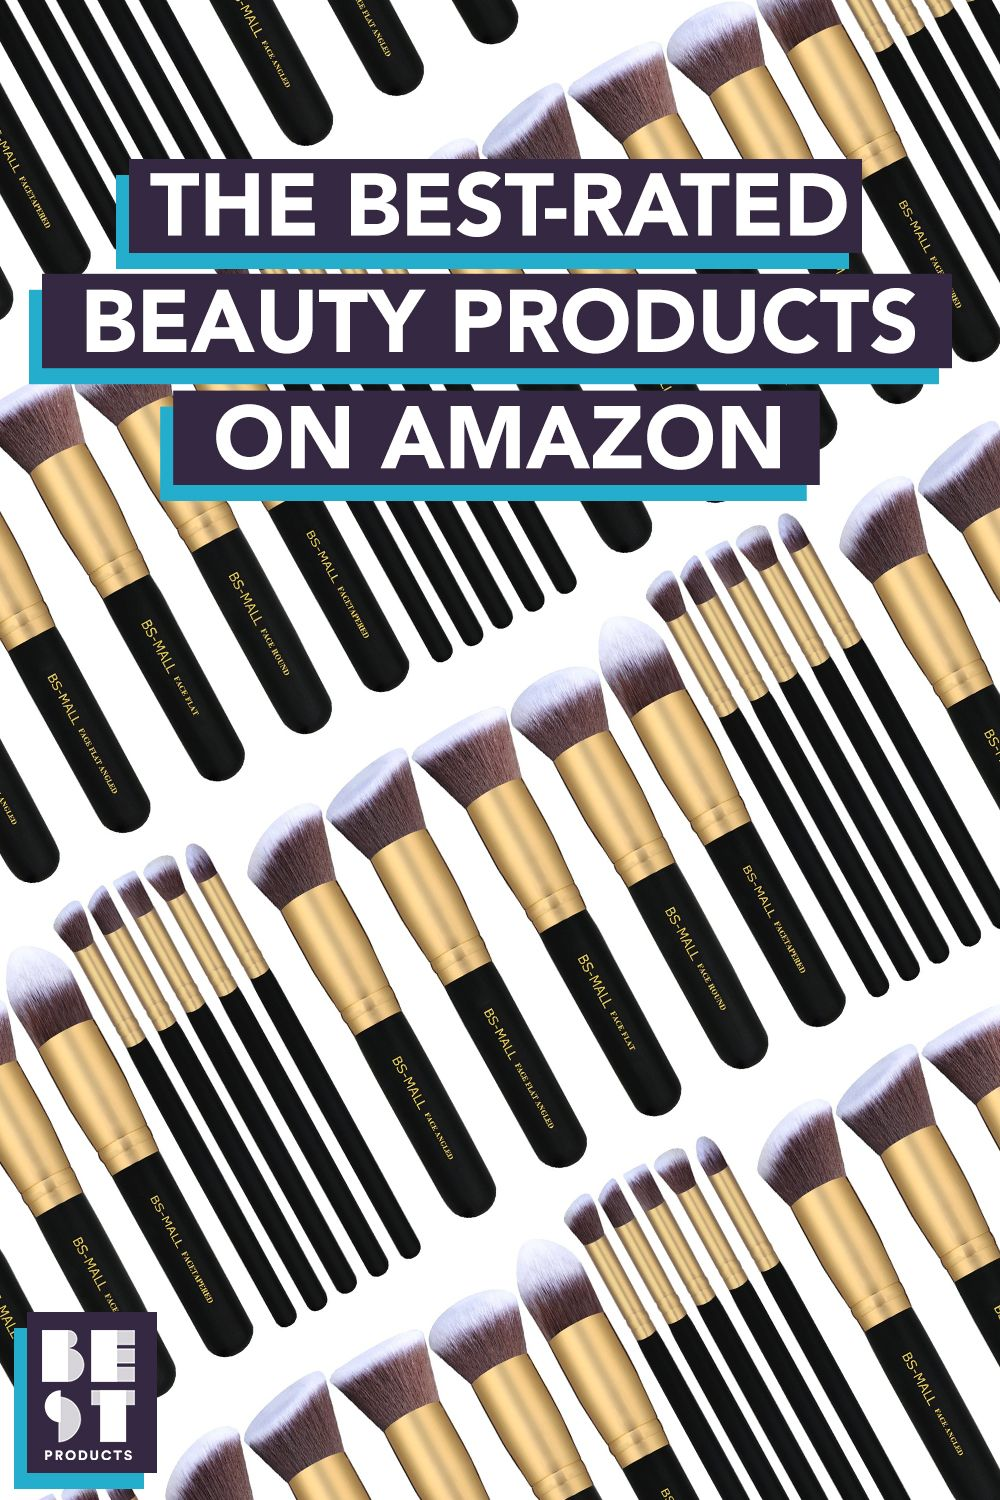 26 Best Rated Beauty Products On Amazon 2018 Top Makeup